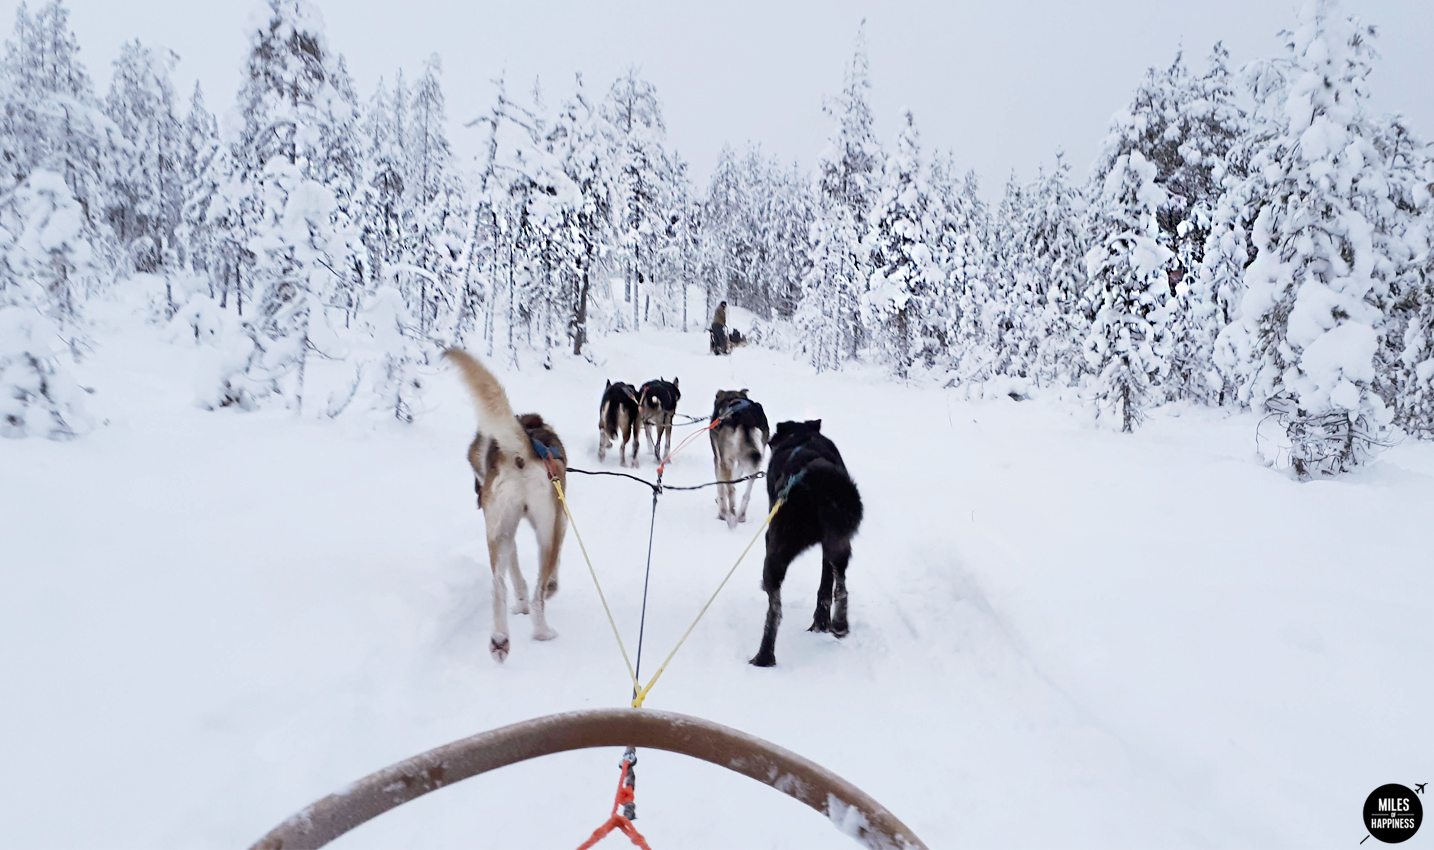 Lapland: A journey into Finland's frozen beauty